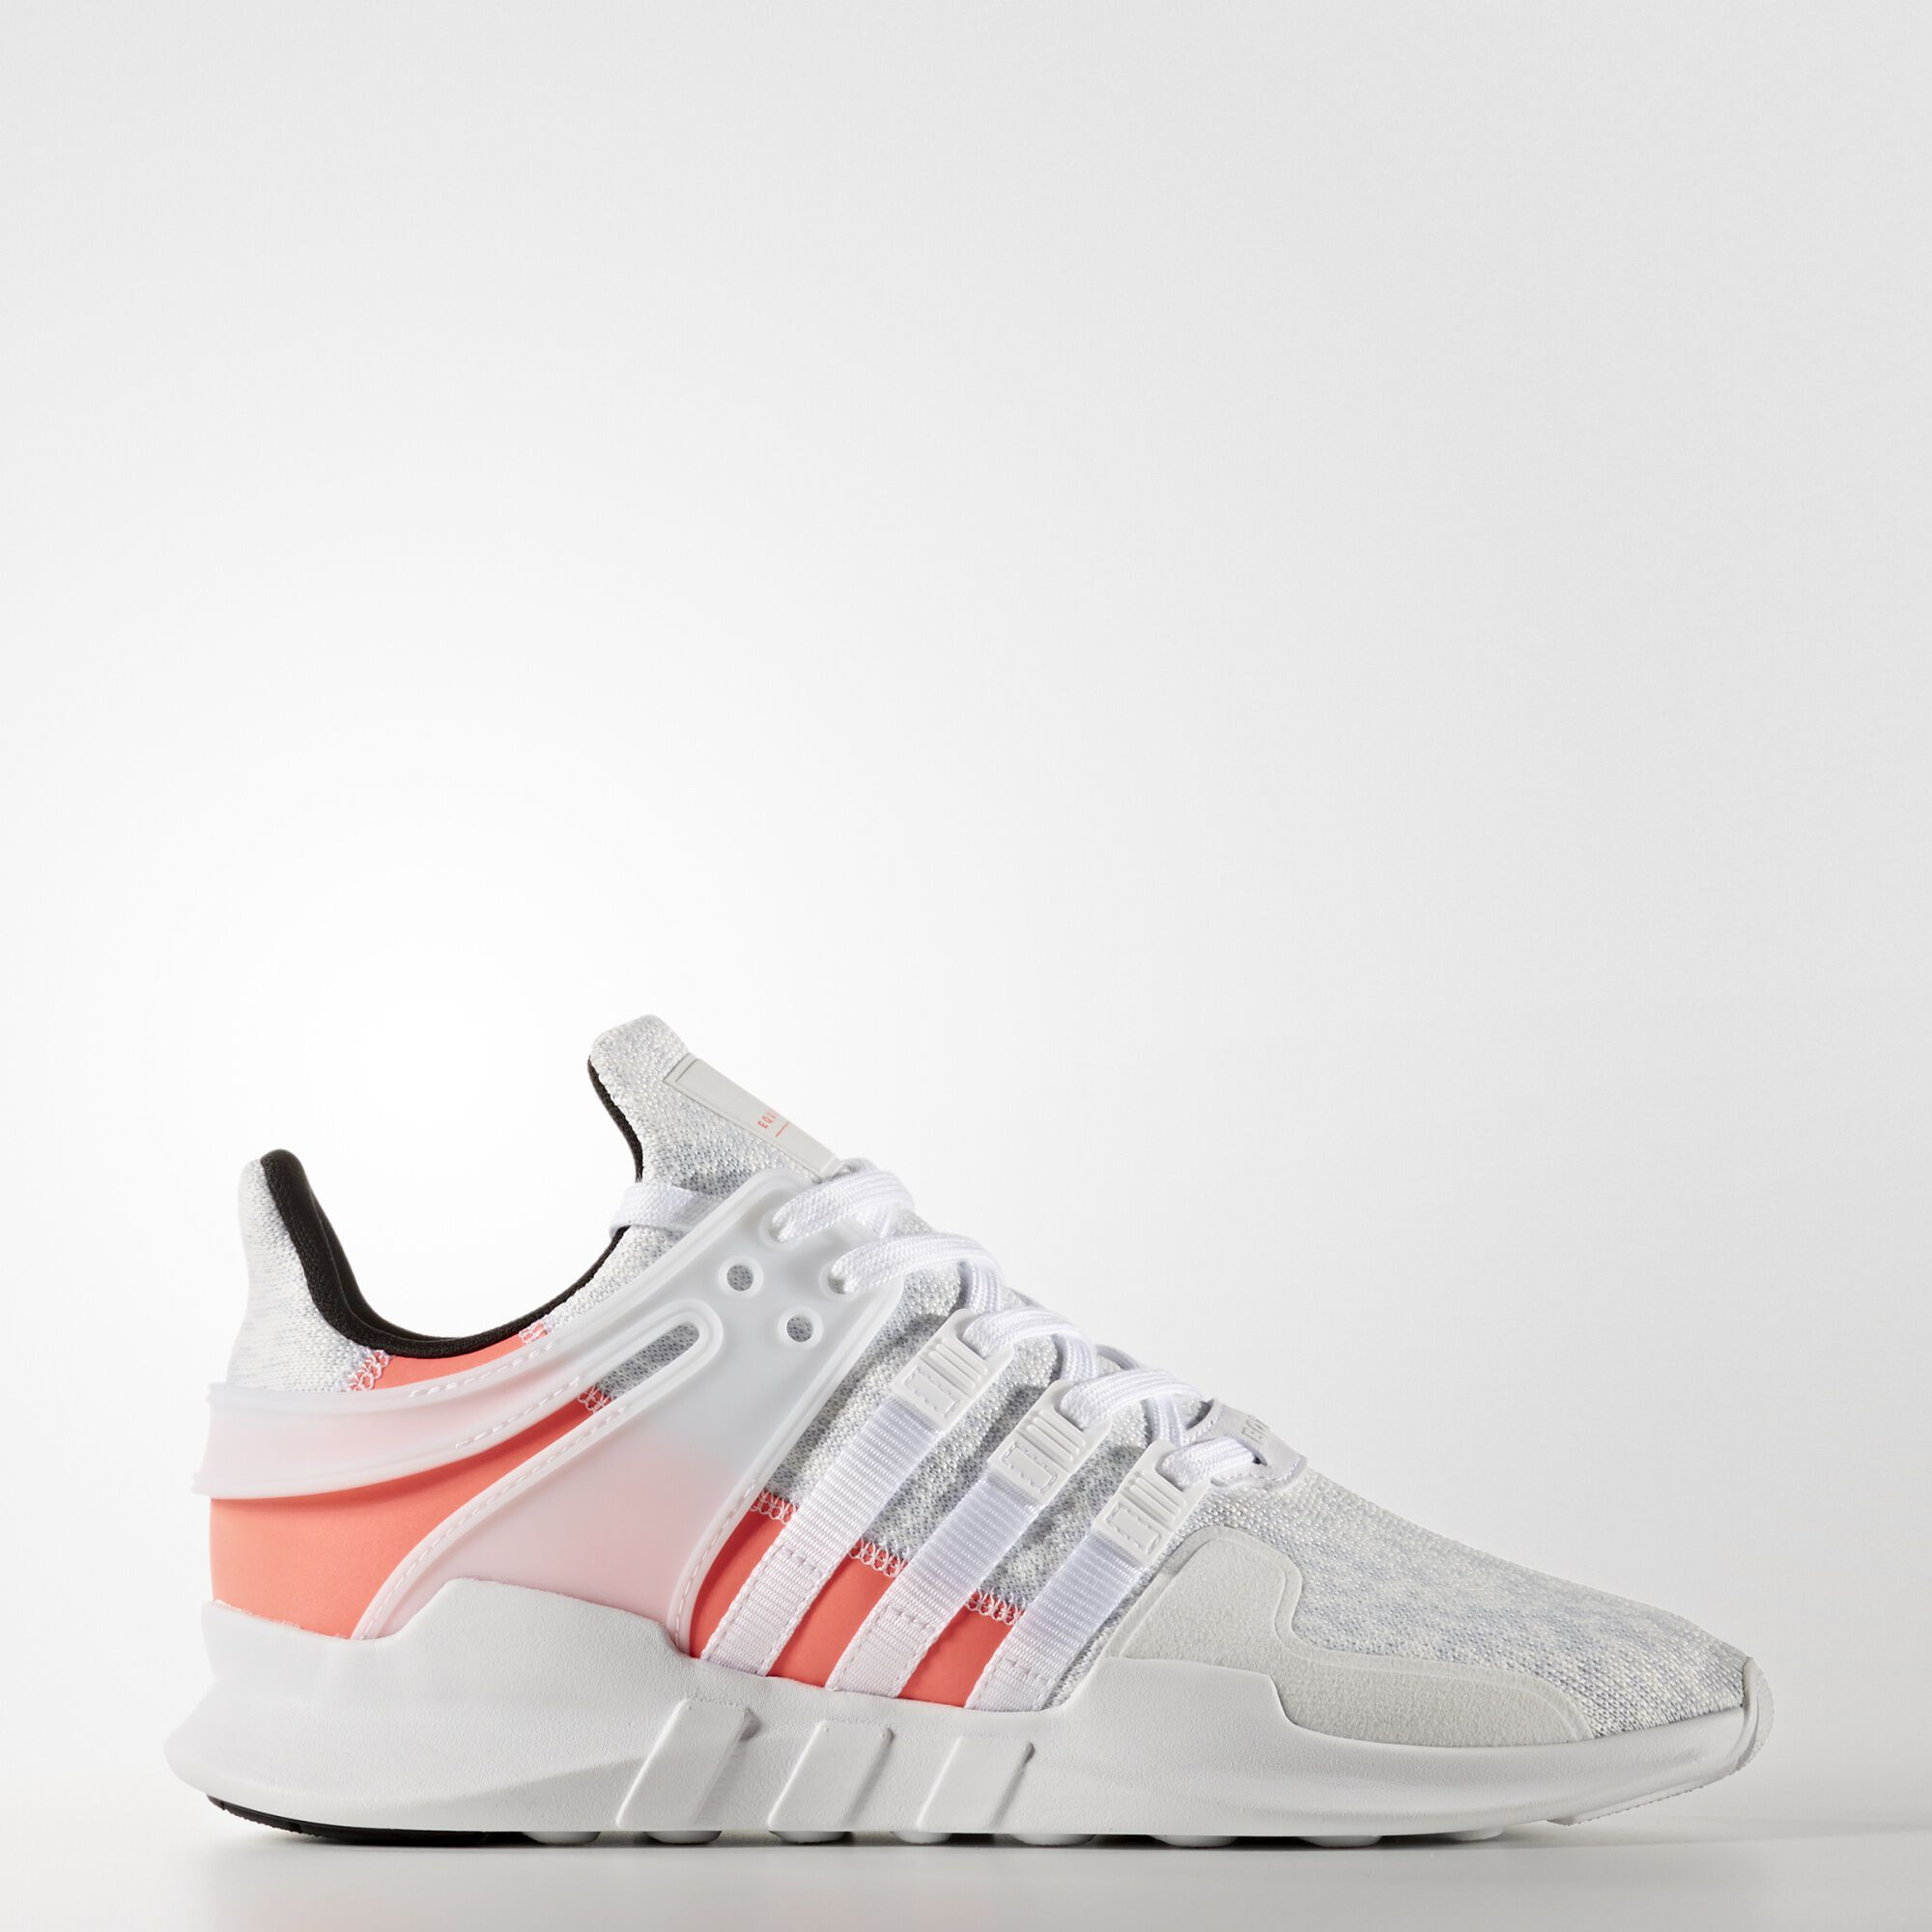 Adidas EQT Support ADV Review Adidas EQT Unboxing Adidas